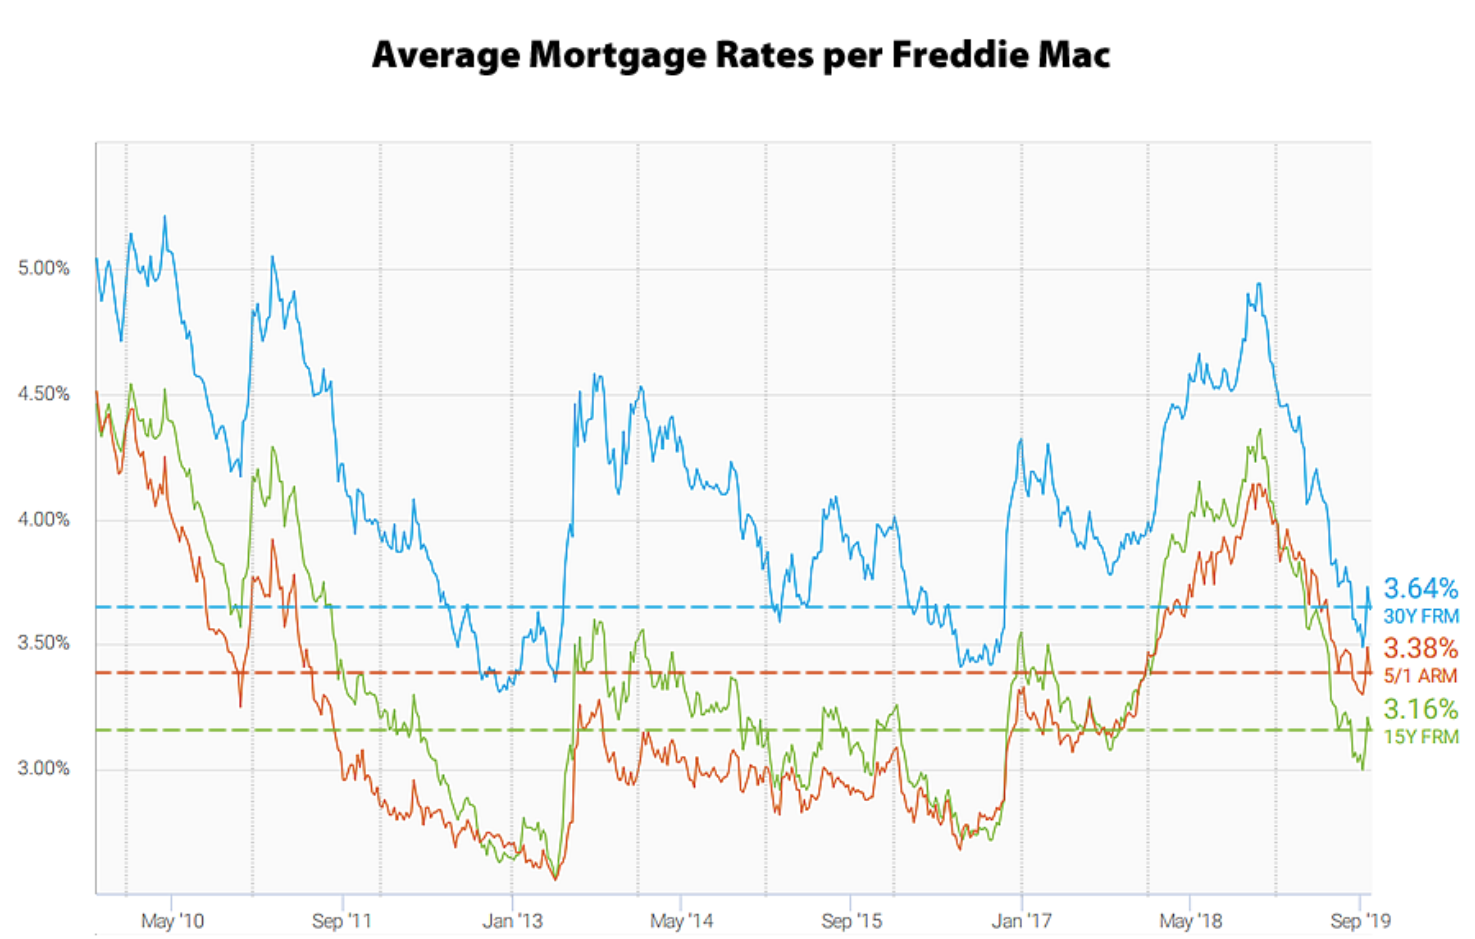 Average mortgage rates from 2010 through 2019